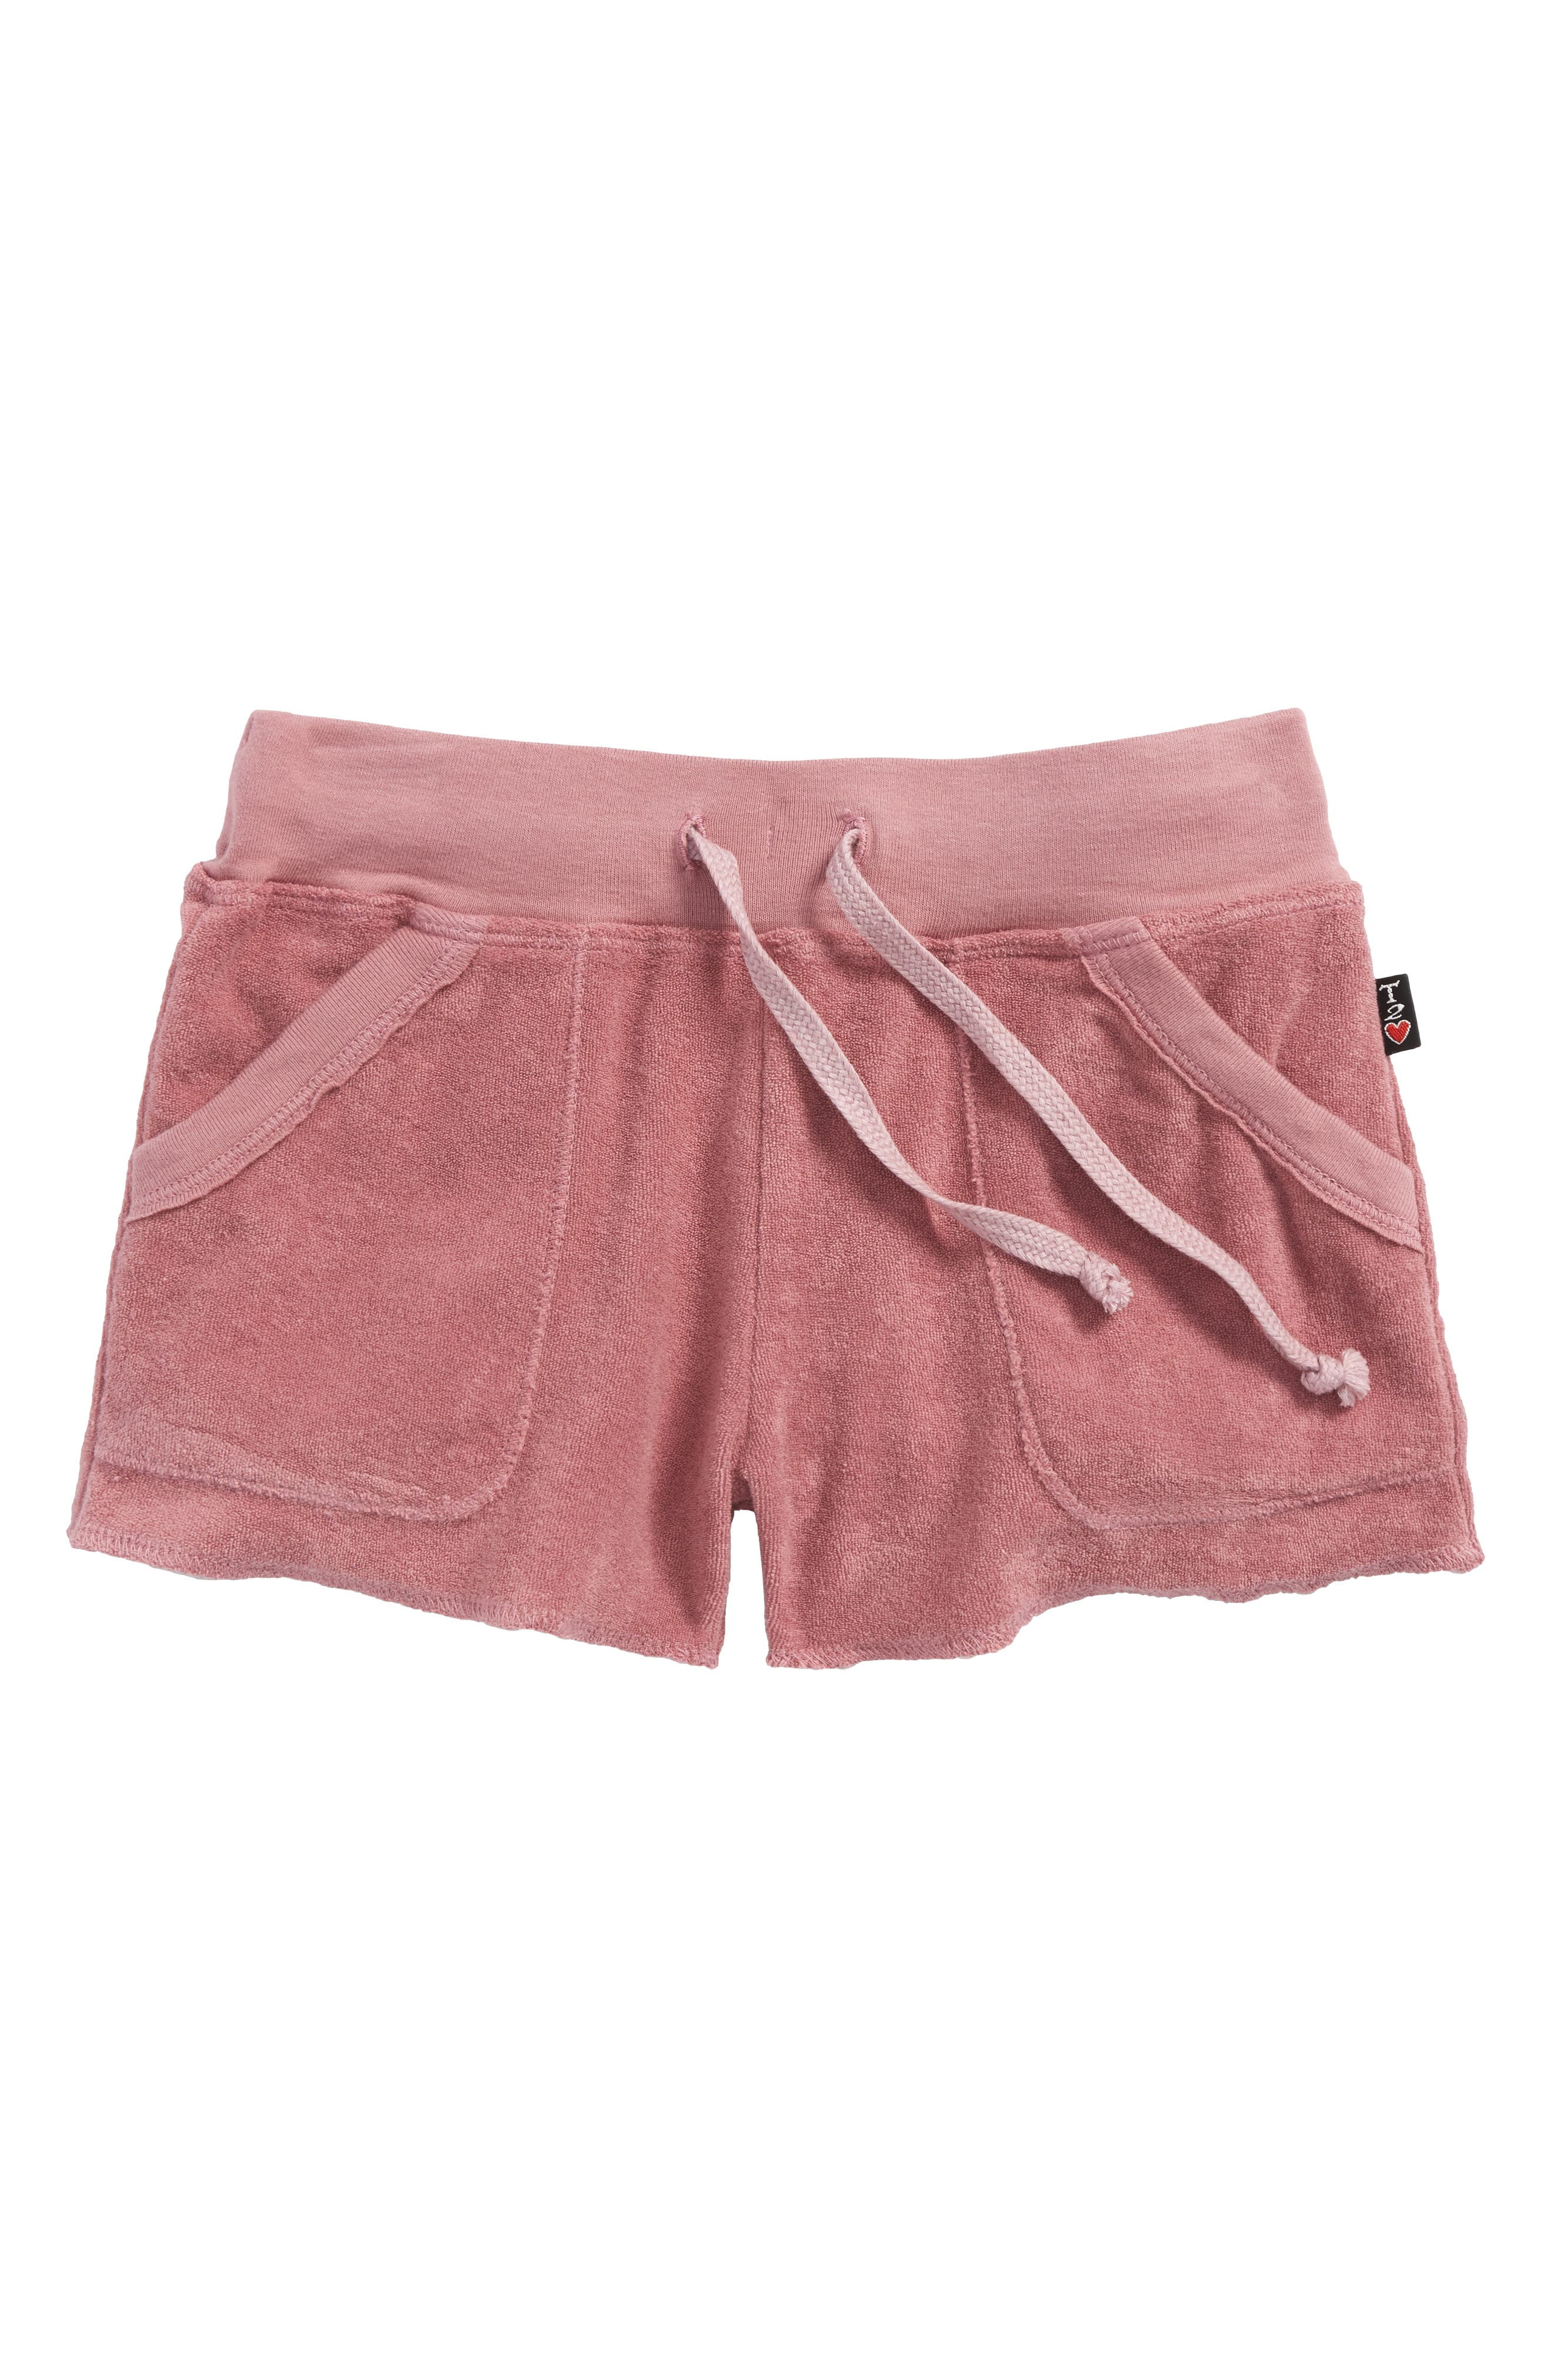 Main Image - T2Love French Terry Shorts (Big Girls)